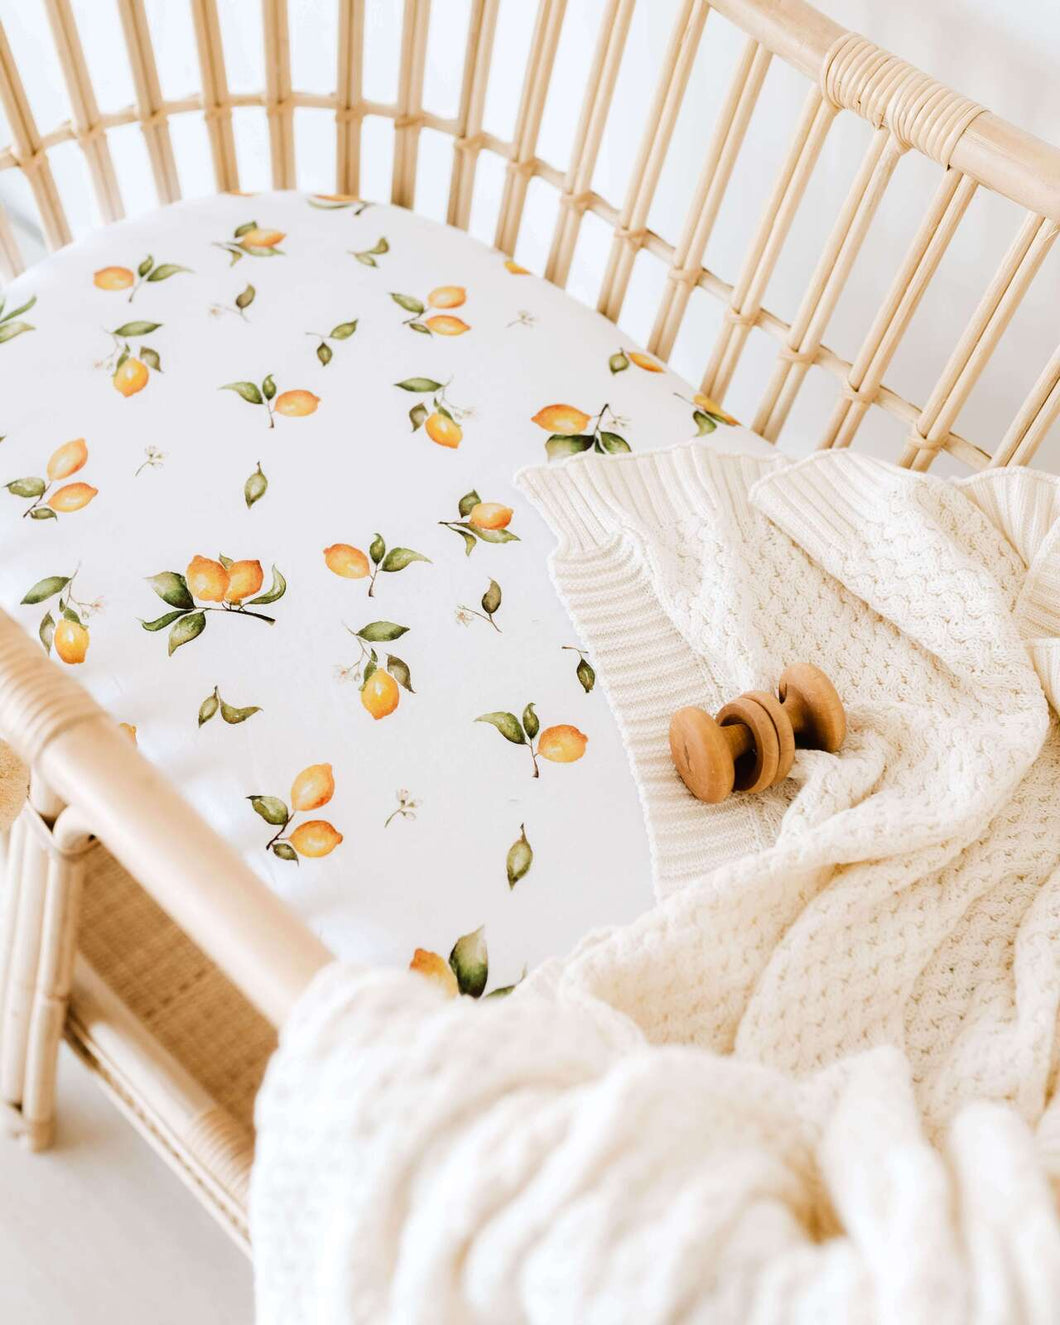 LEMON FITTED BASSINET SHEET & CHANGE PAD COVER